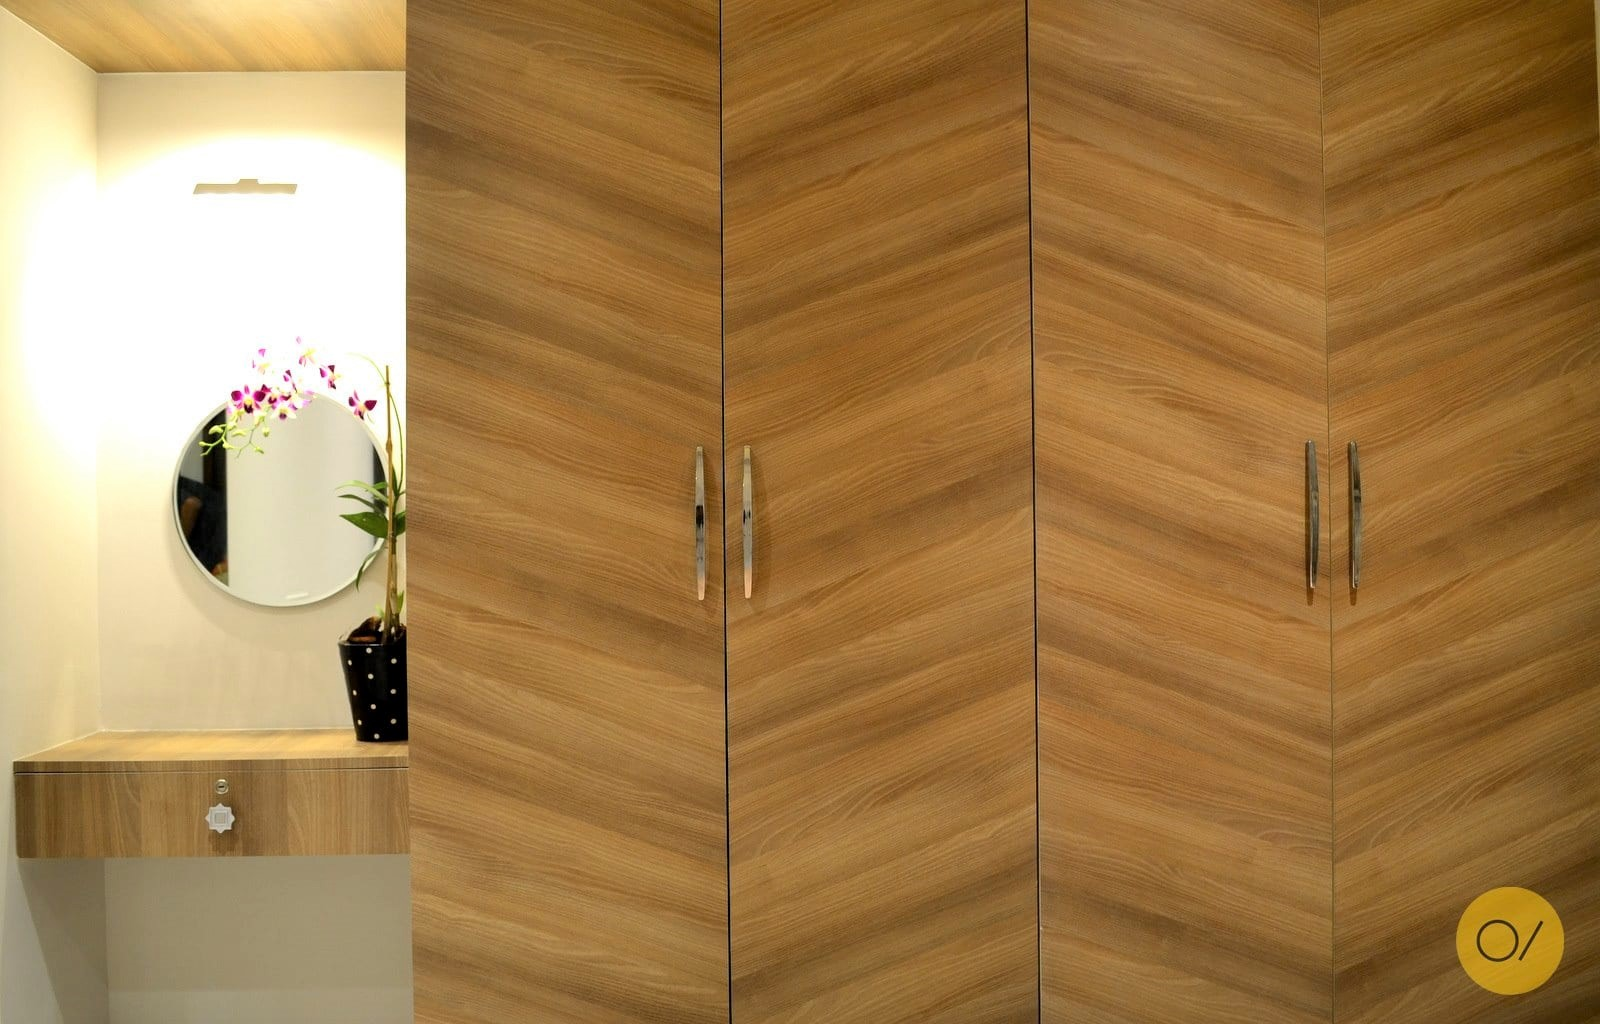 Wooden Wardrobe Designs: 5 Latest Ideas for Your Urban Indian